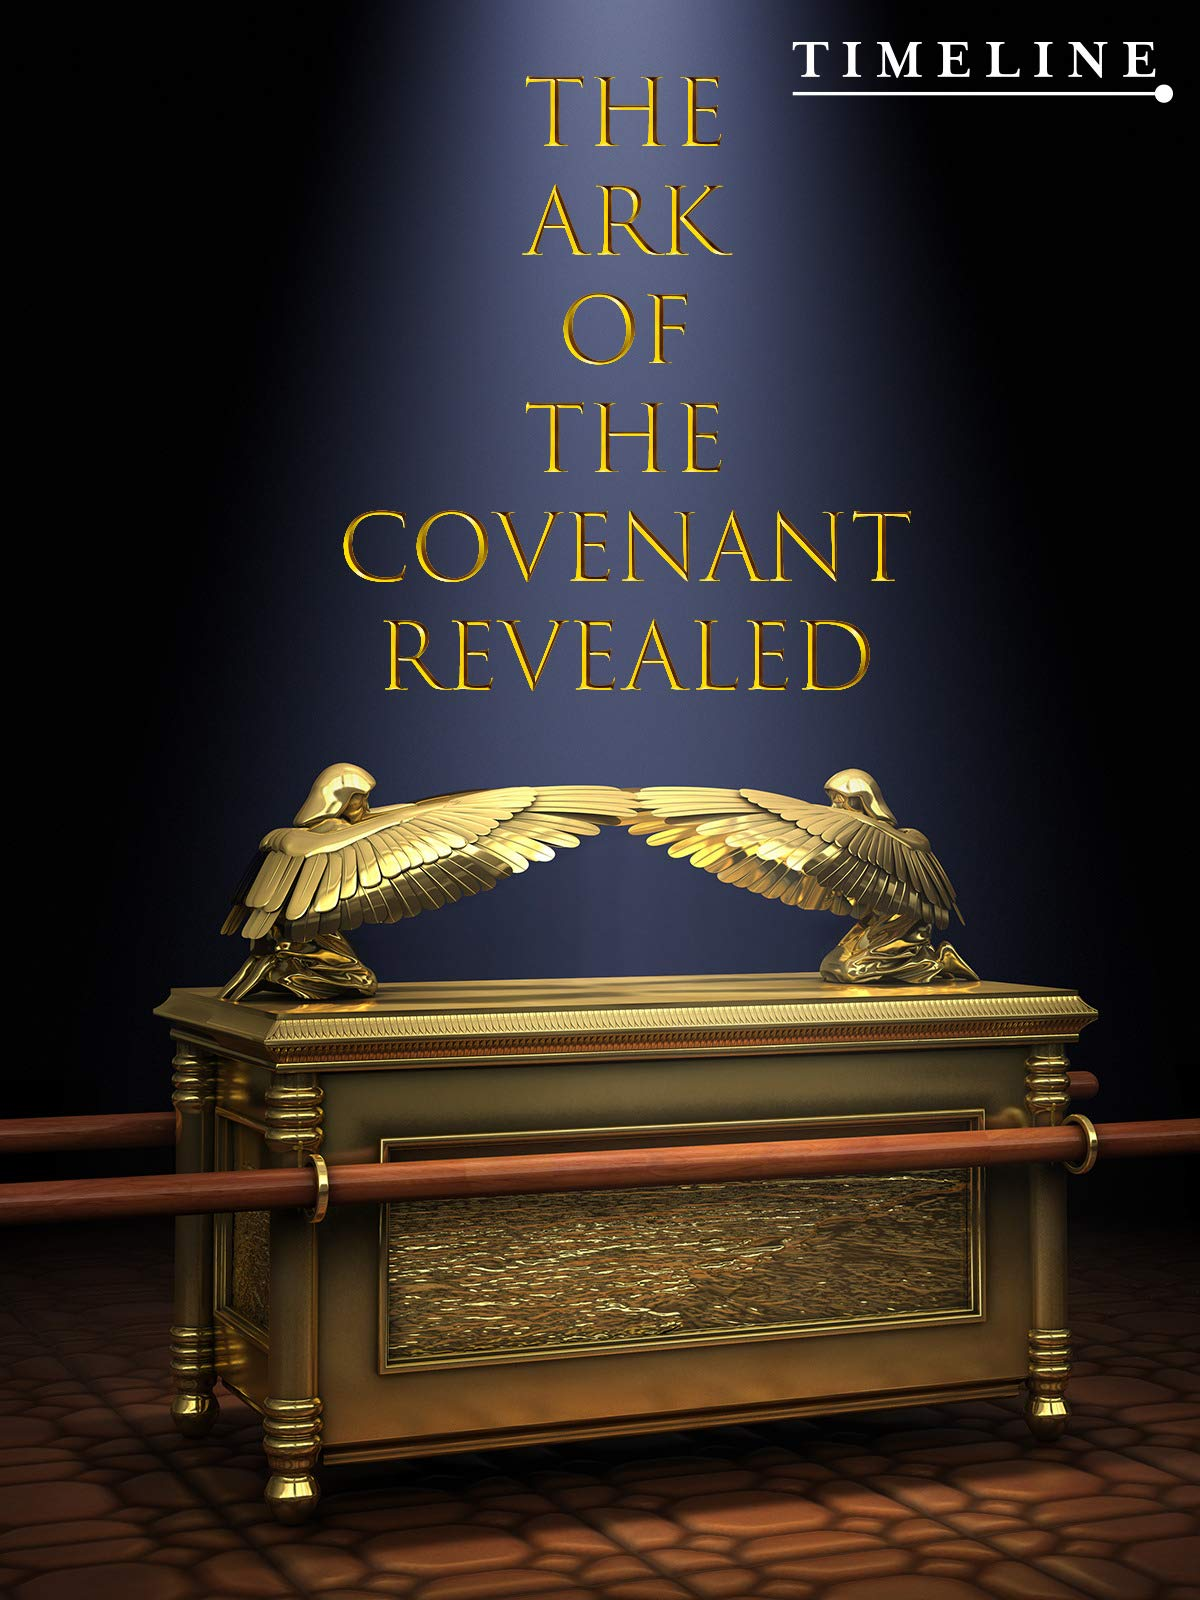 The Ark Of The Covenant Revealed